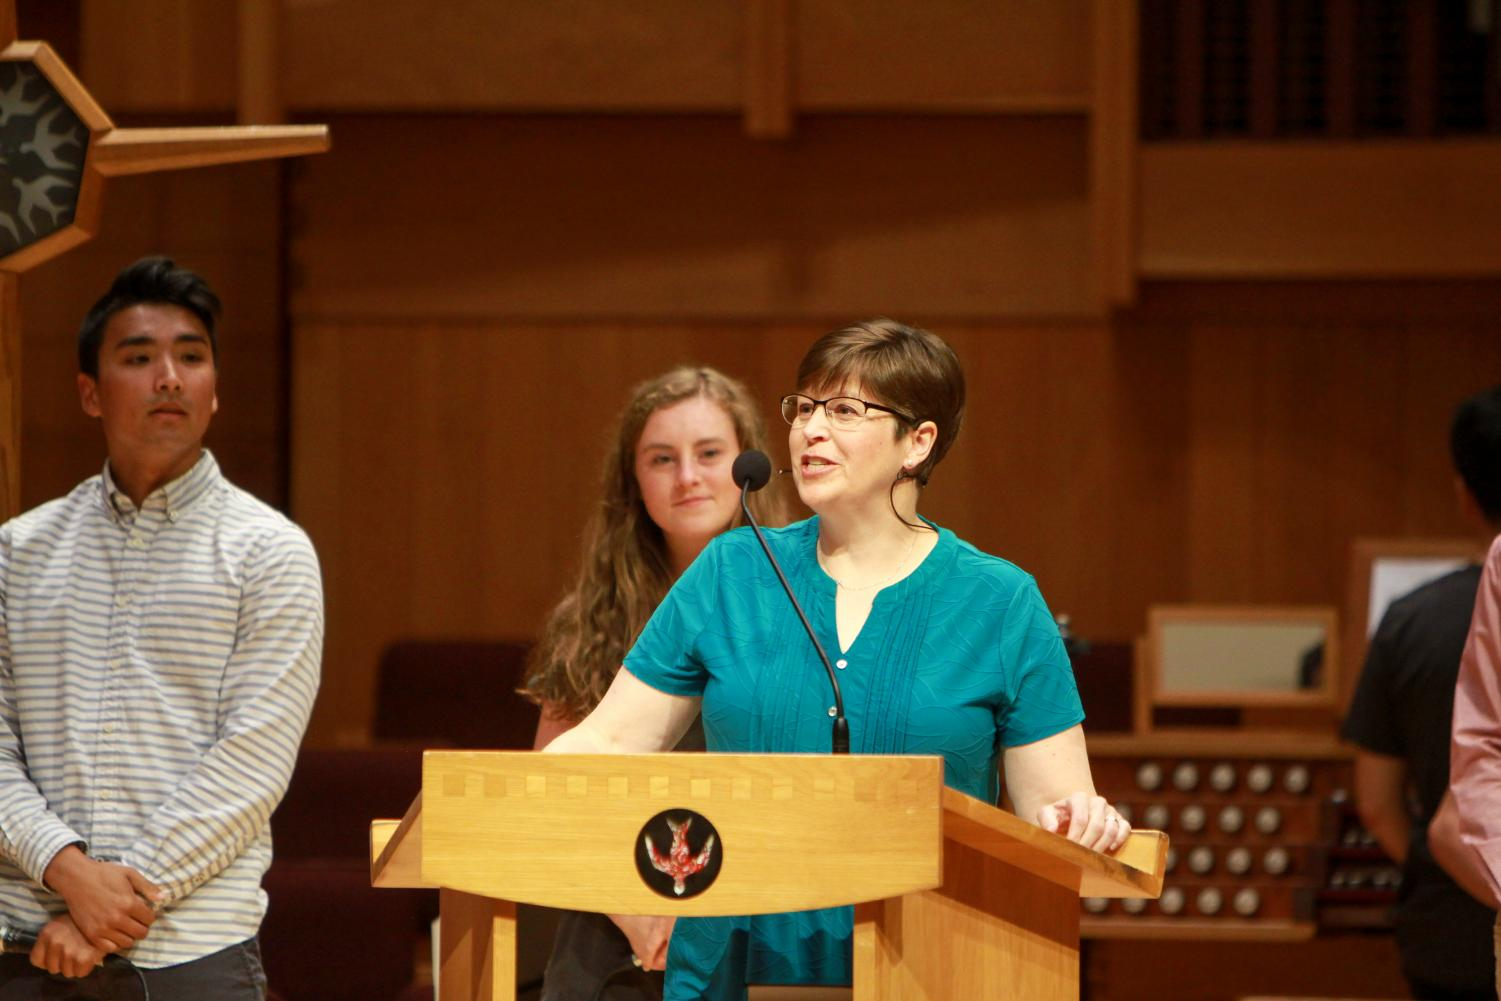 Chaplain+Mary+Hulst+leads+the+audience+in+the+dedication+litany.